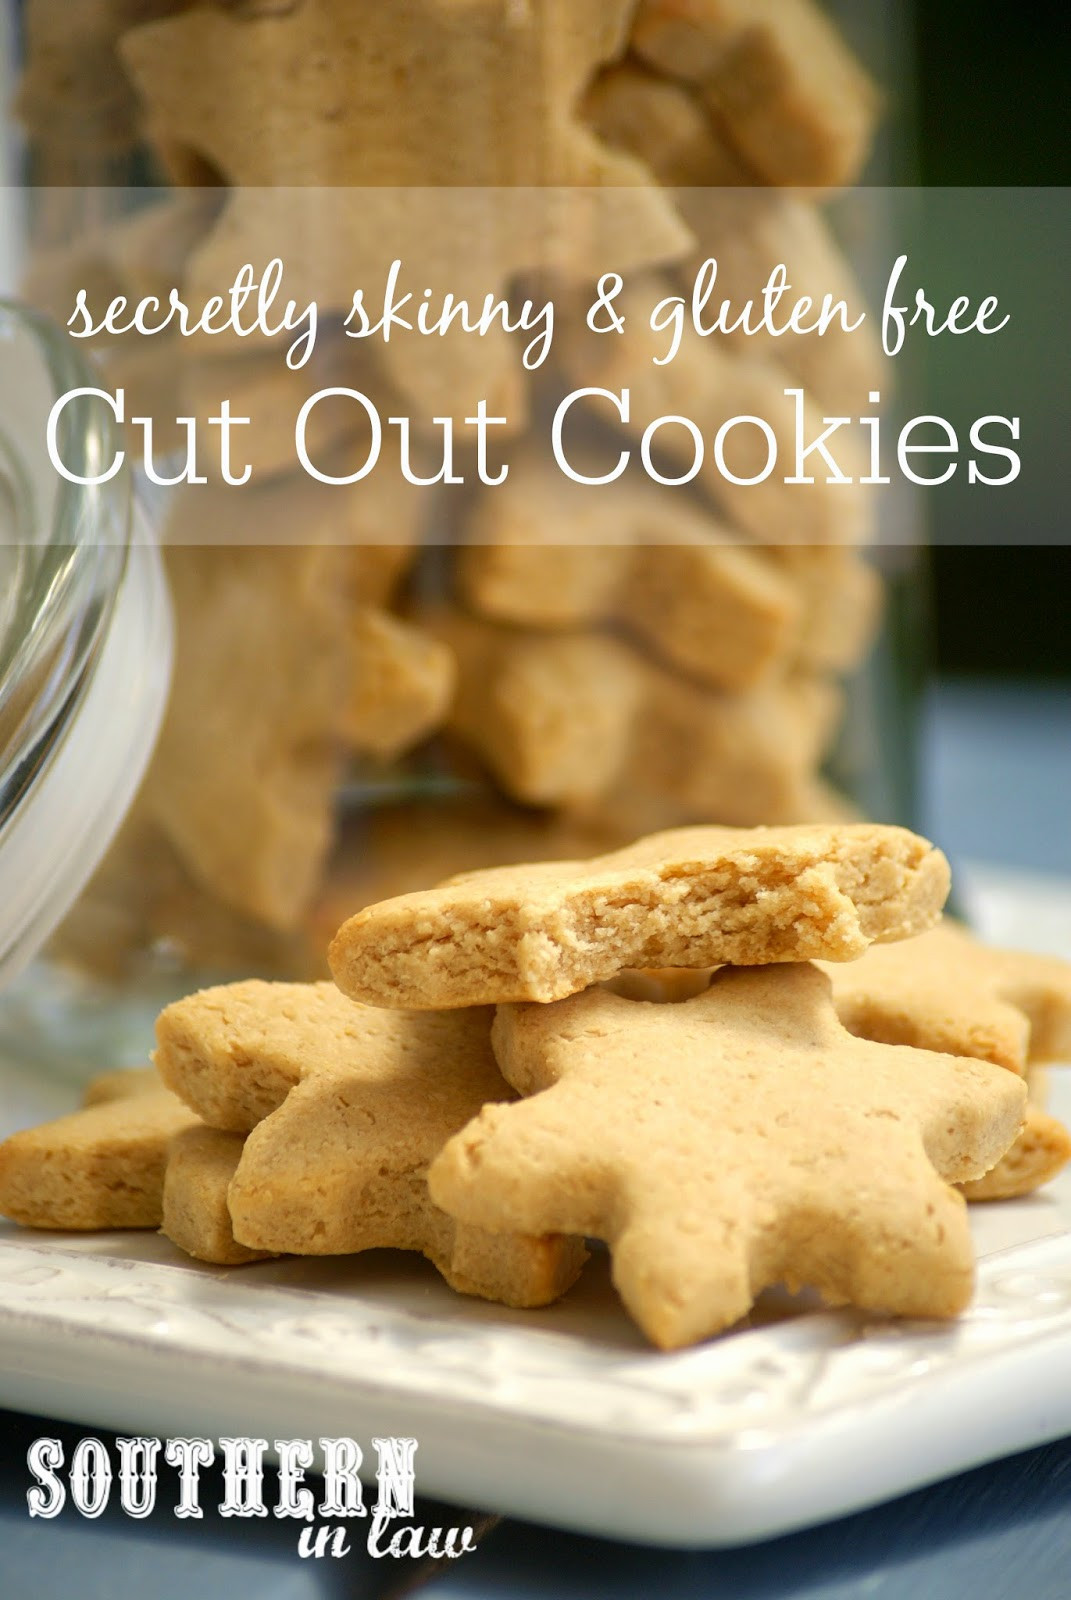 Low Fat Low Sugar Recipes  Southern In Law Recipe Healthier Cut Out Cookies